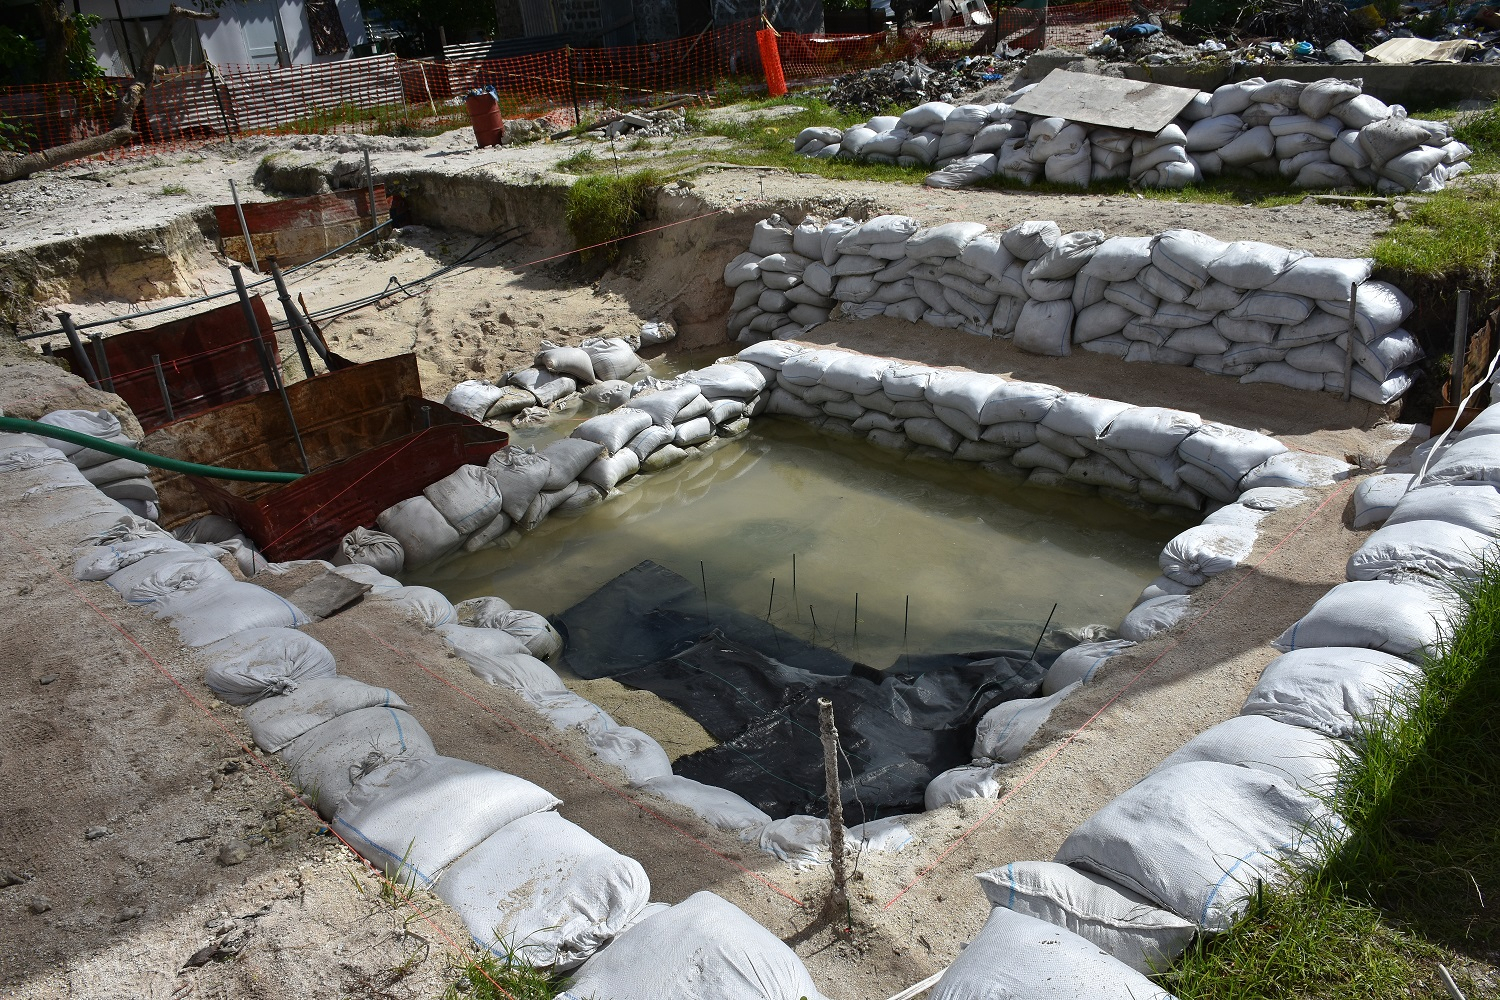 Graves of US WWII servicemen unearthed on Pacific island